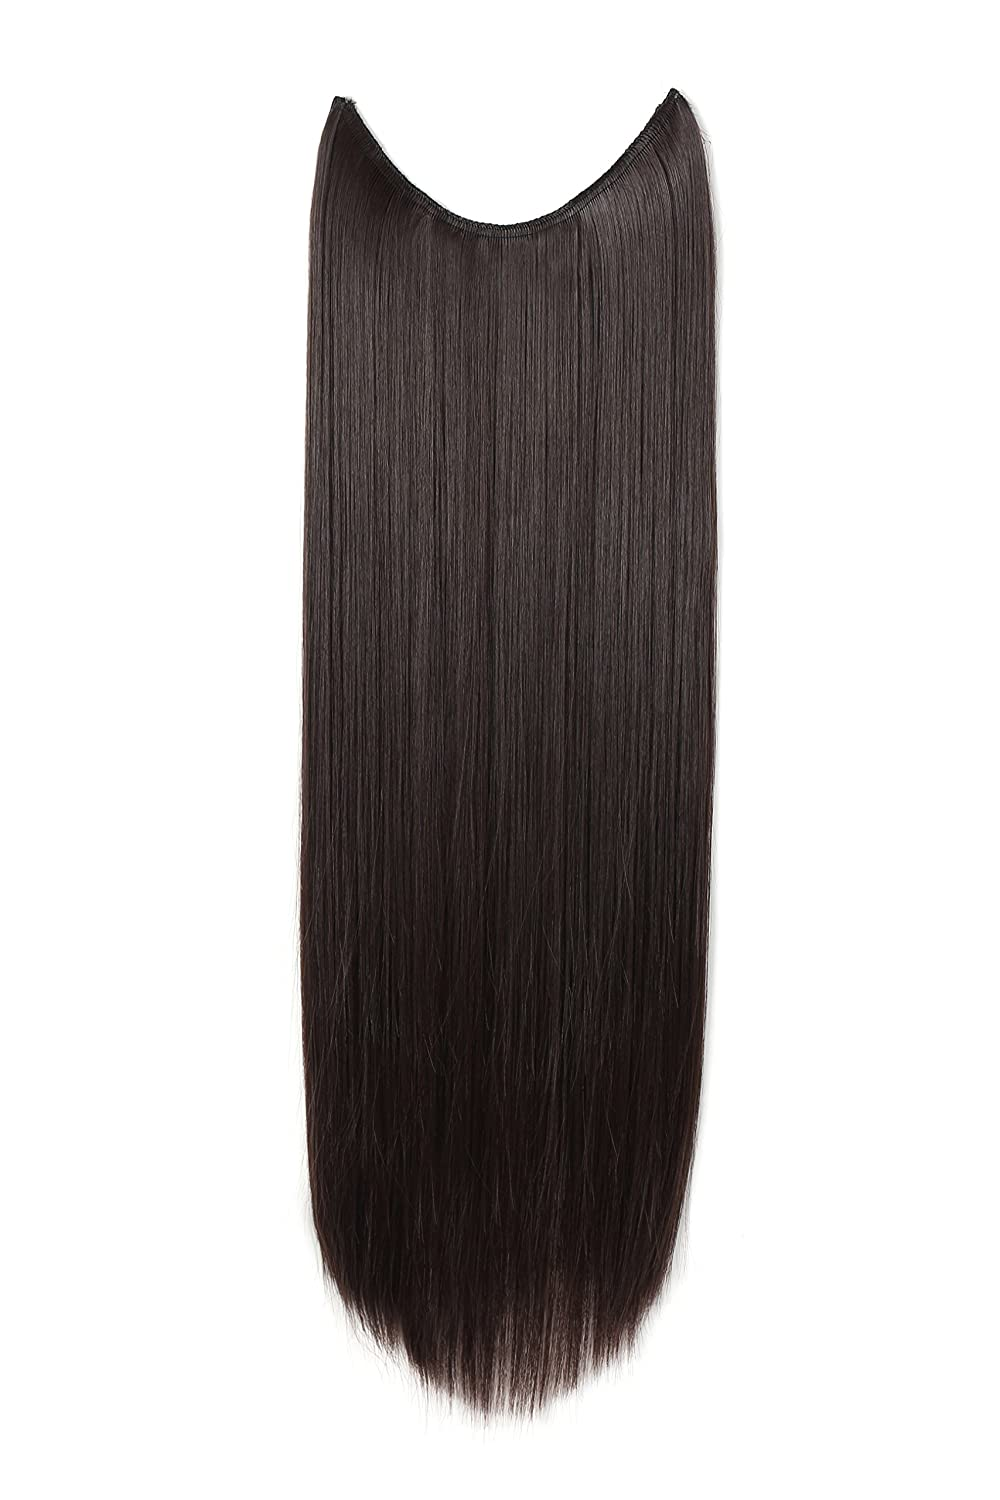 Amazon onedor 24 straight synthetic hair extensions amazon onedor 24 straight synthetic hair extensions transparent wire no clips 24 straight dark brown 4 beauty pmusecretfo Choice Image